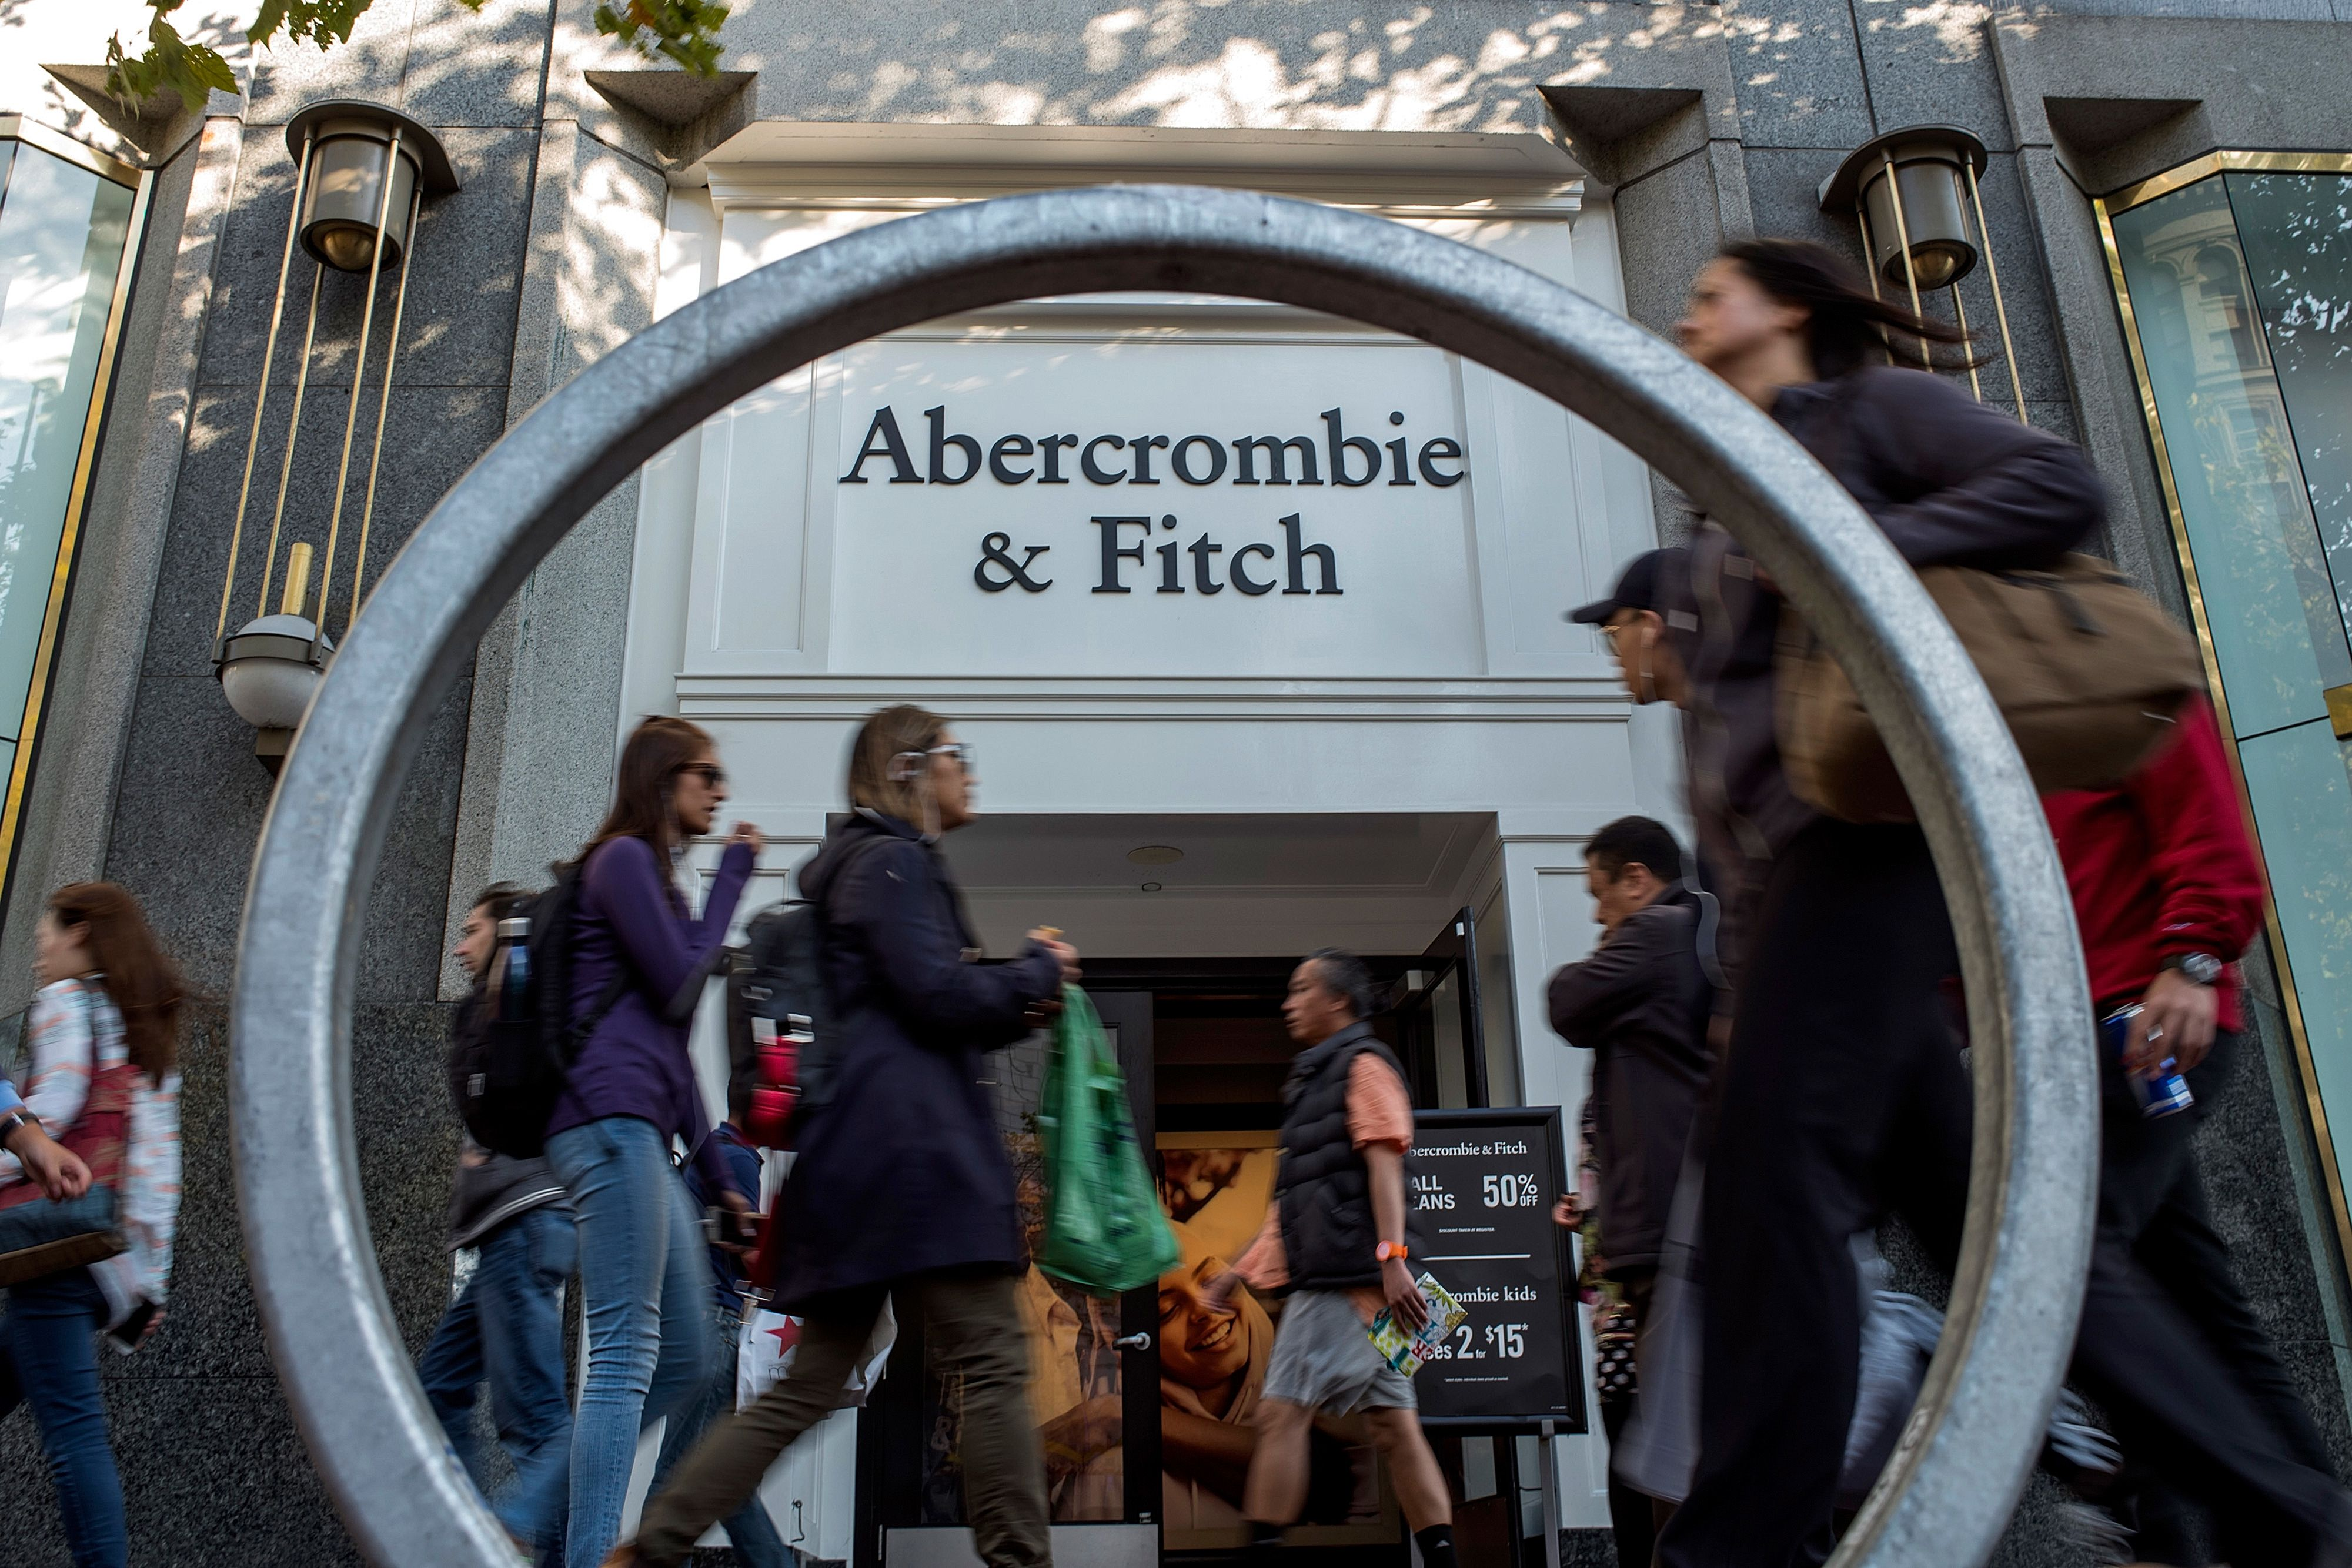 Abercrombie & Fitch CEO says smaller stores are the future